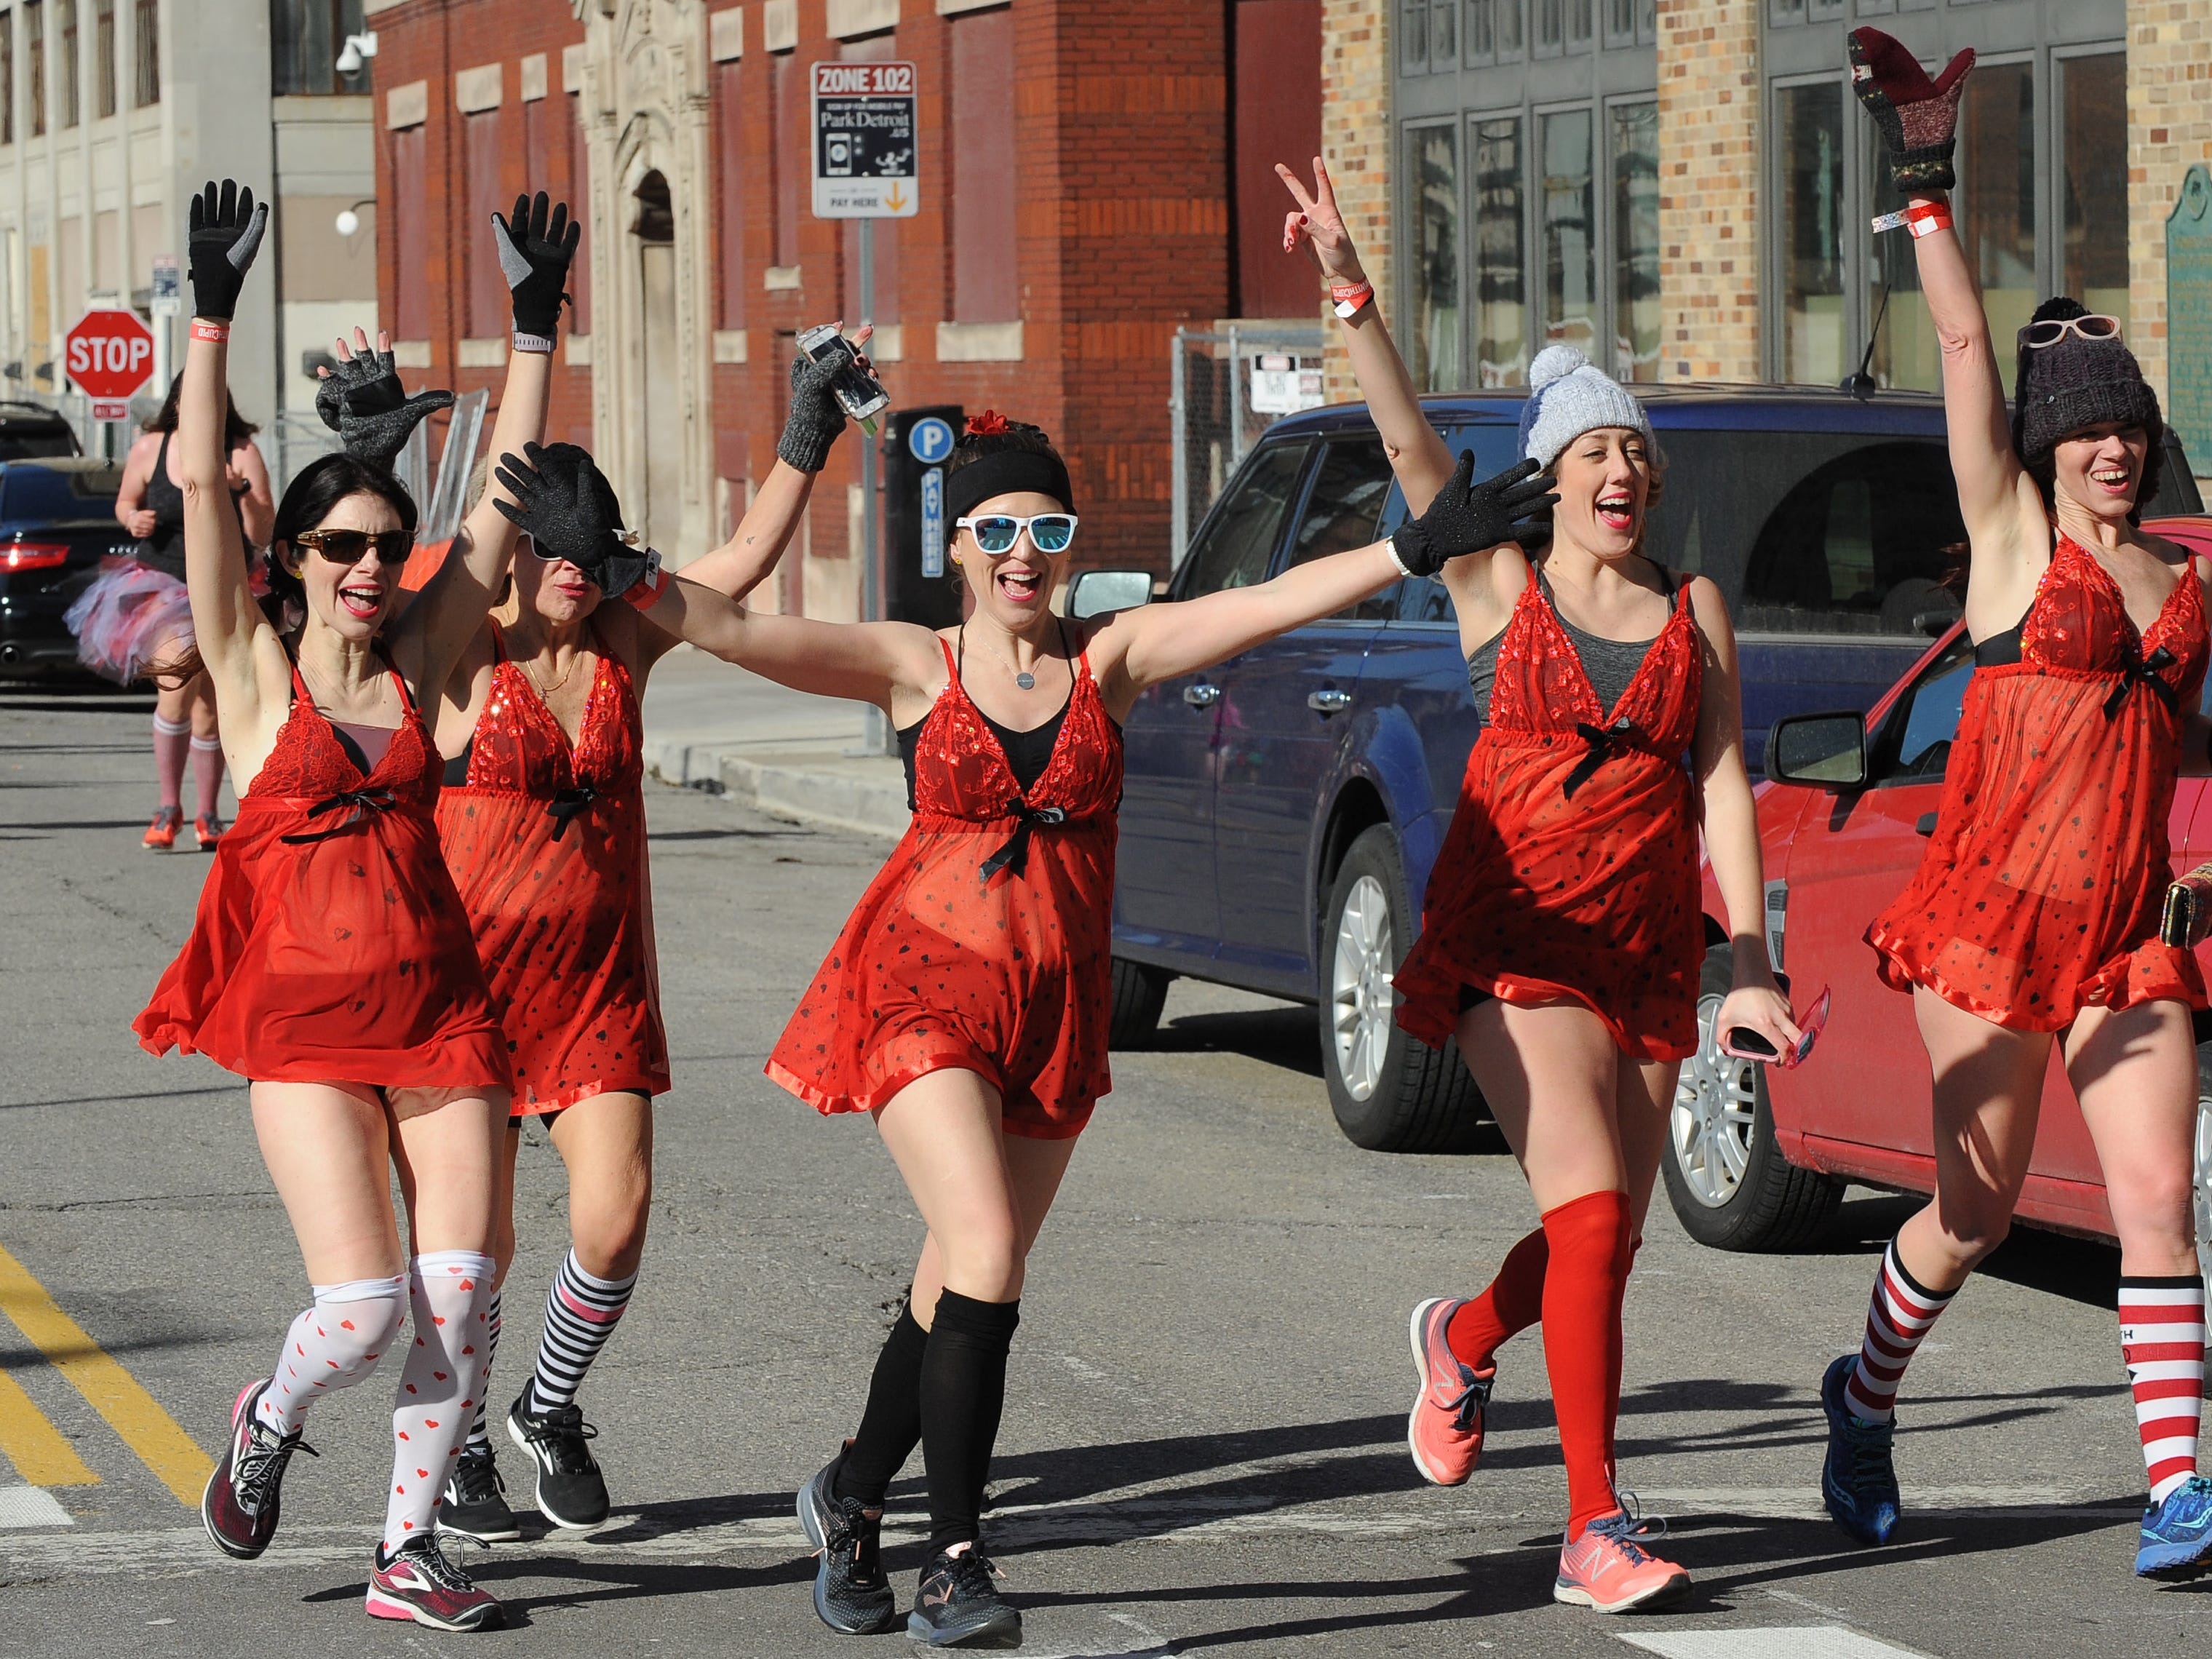 Participants hit the streets around the The Fillmore Detroit for CupidÕs Undie Run, a fundraiser to find a cure for neurofibromatosis, on Saturday, February 9, 2019.